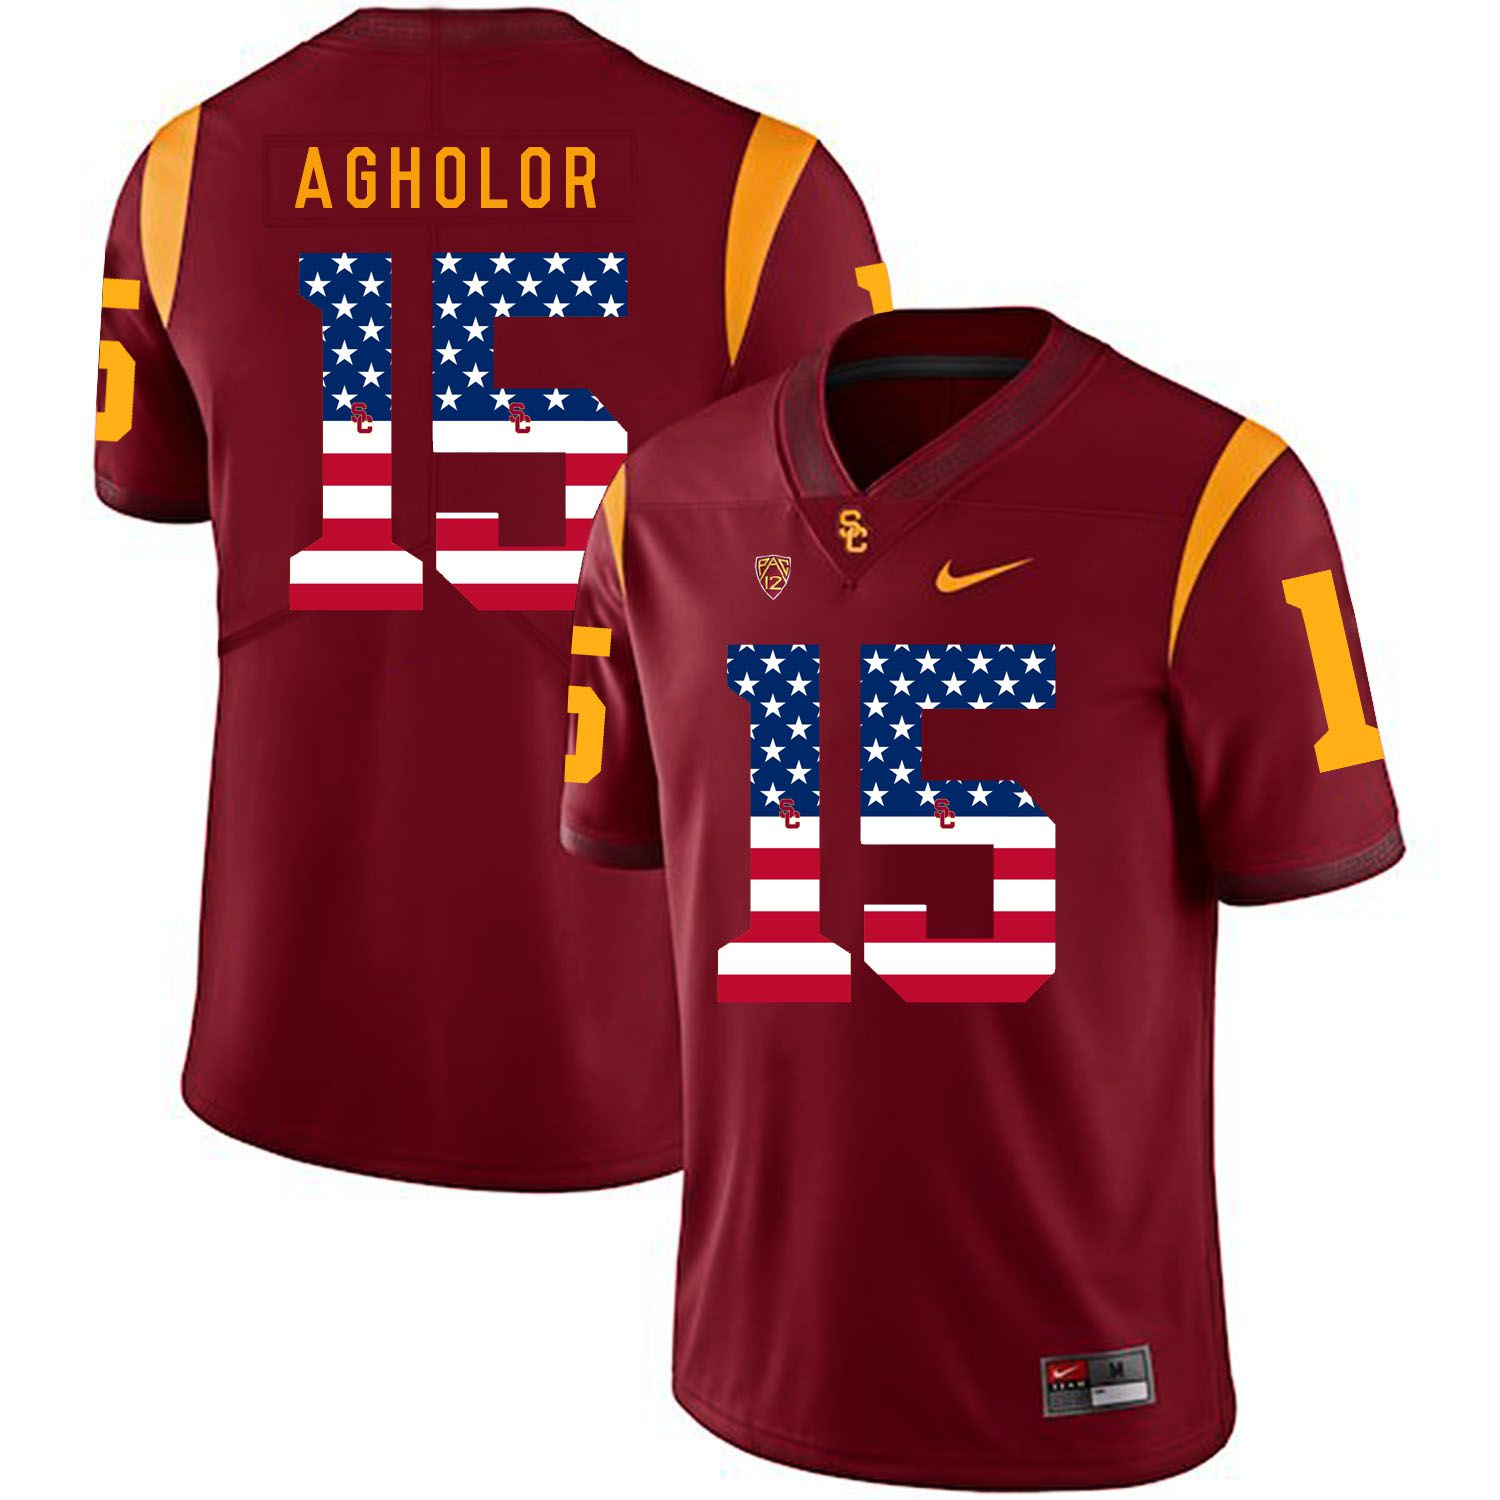 Men USC Trojans 15 Agholor Red Flag Customized NCAA Jerseys